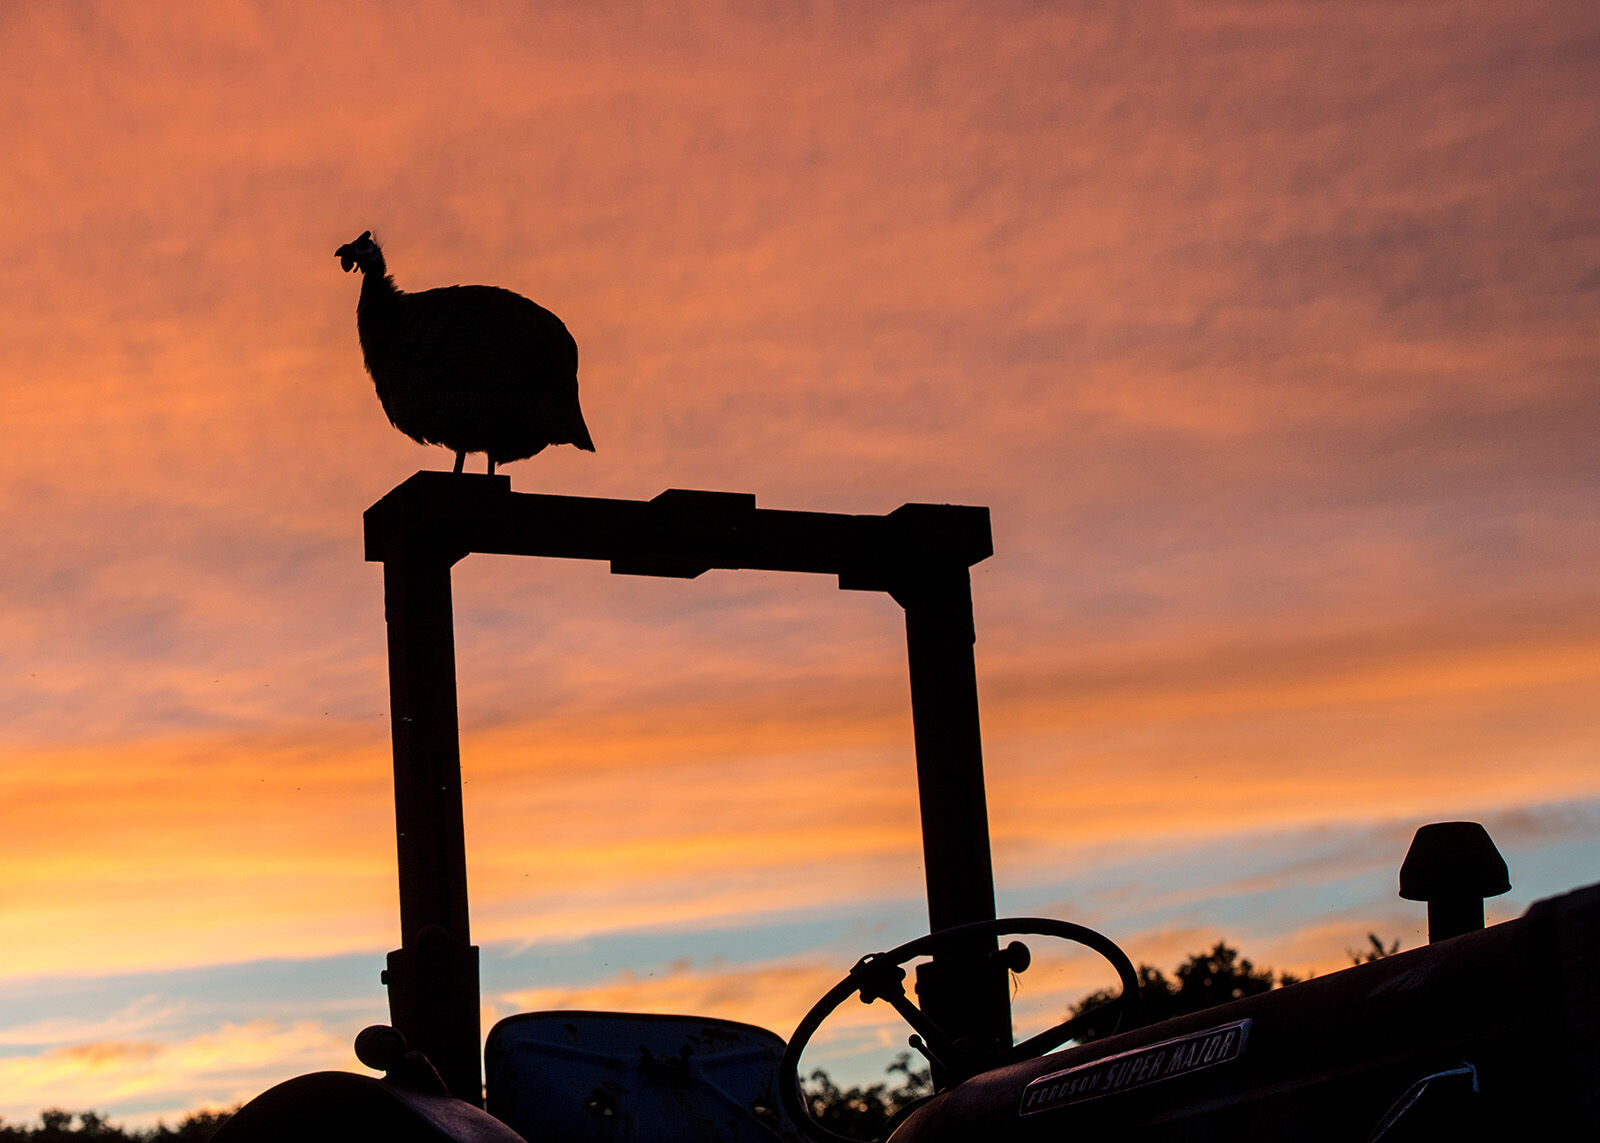 Guinea fowl on old tractor.